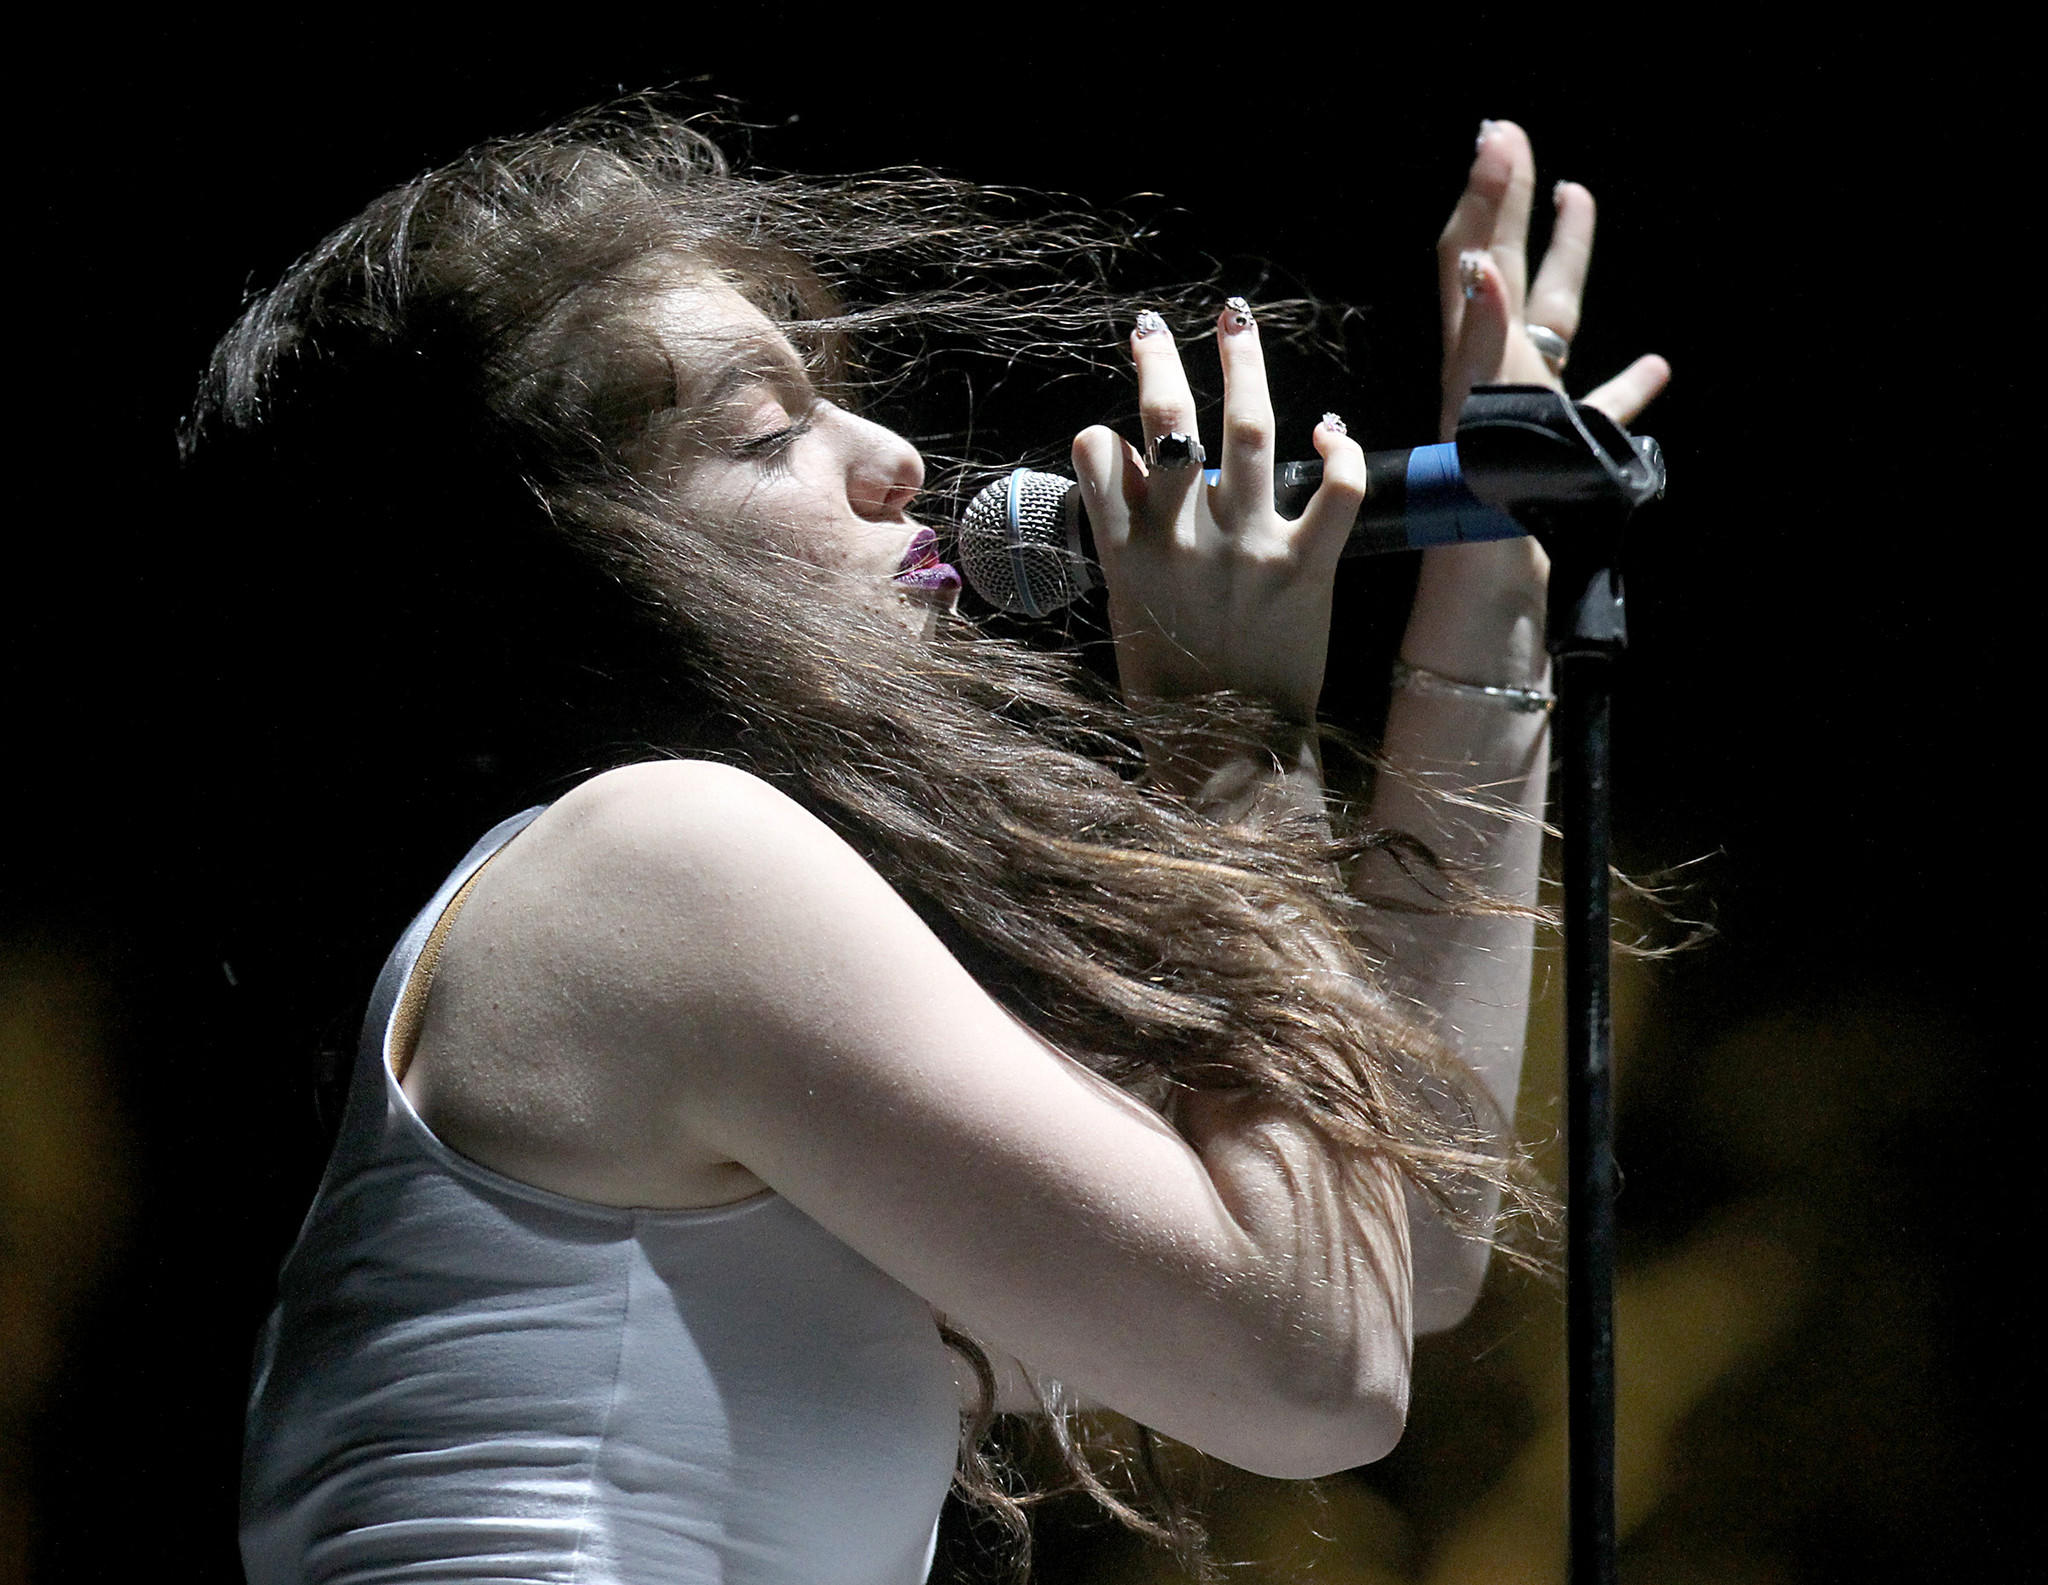 Lorde performs at the Coachella Valley Music and Arts Festival in Indio.